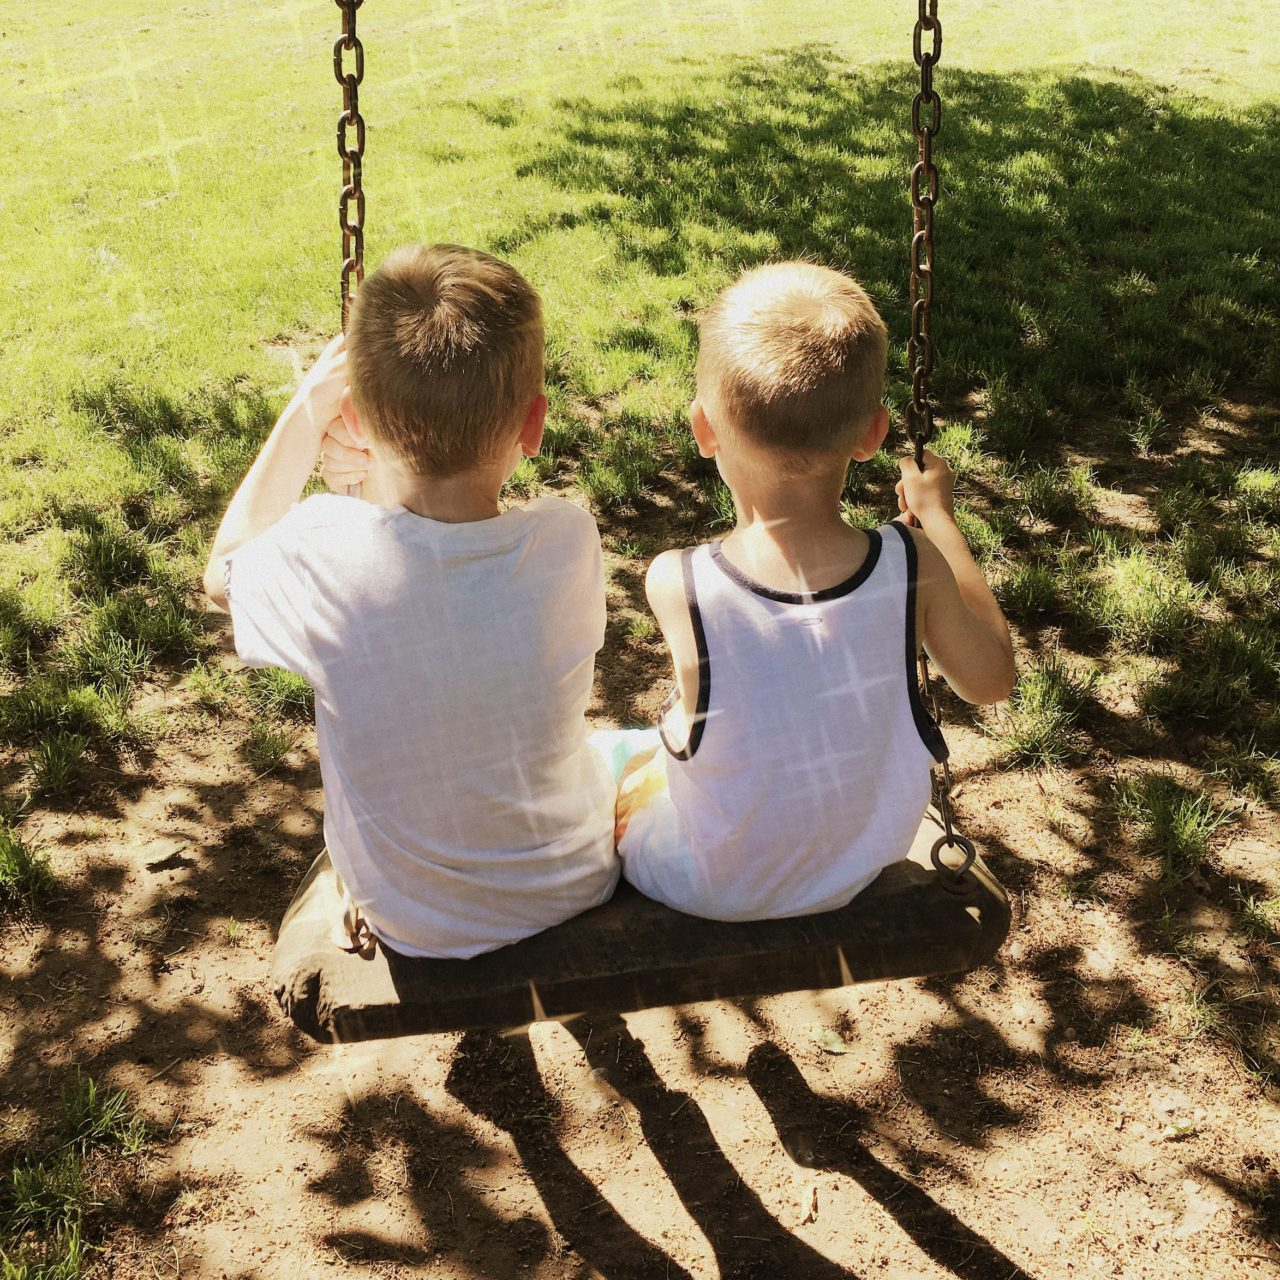 Choosing A Screen Free Summer For Your Kids